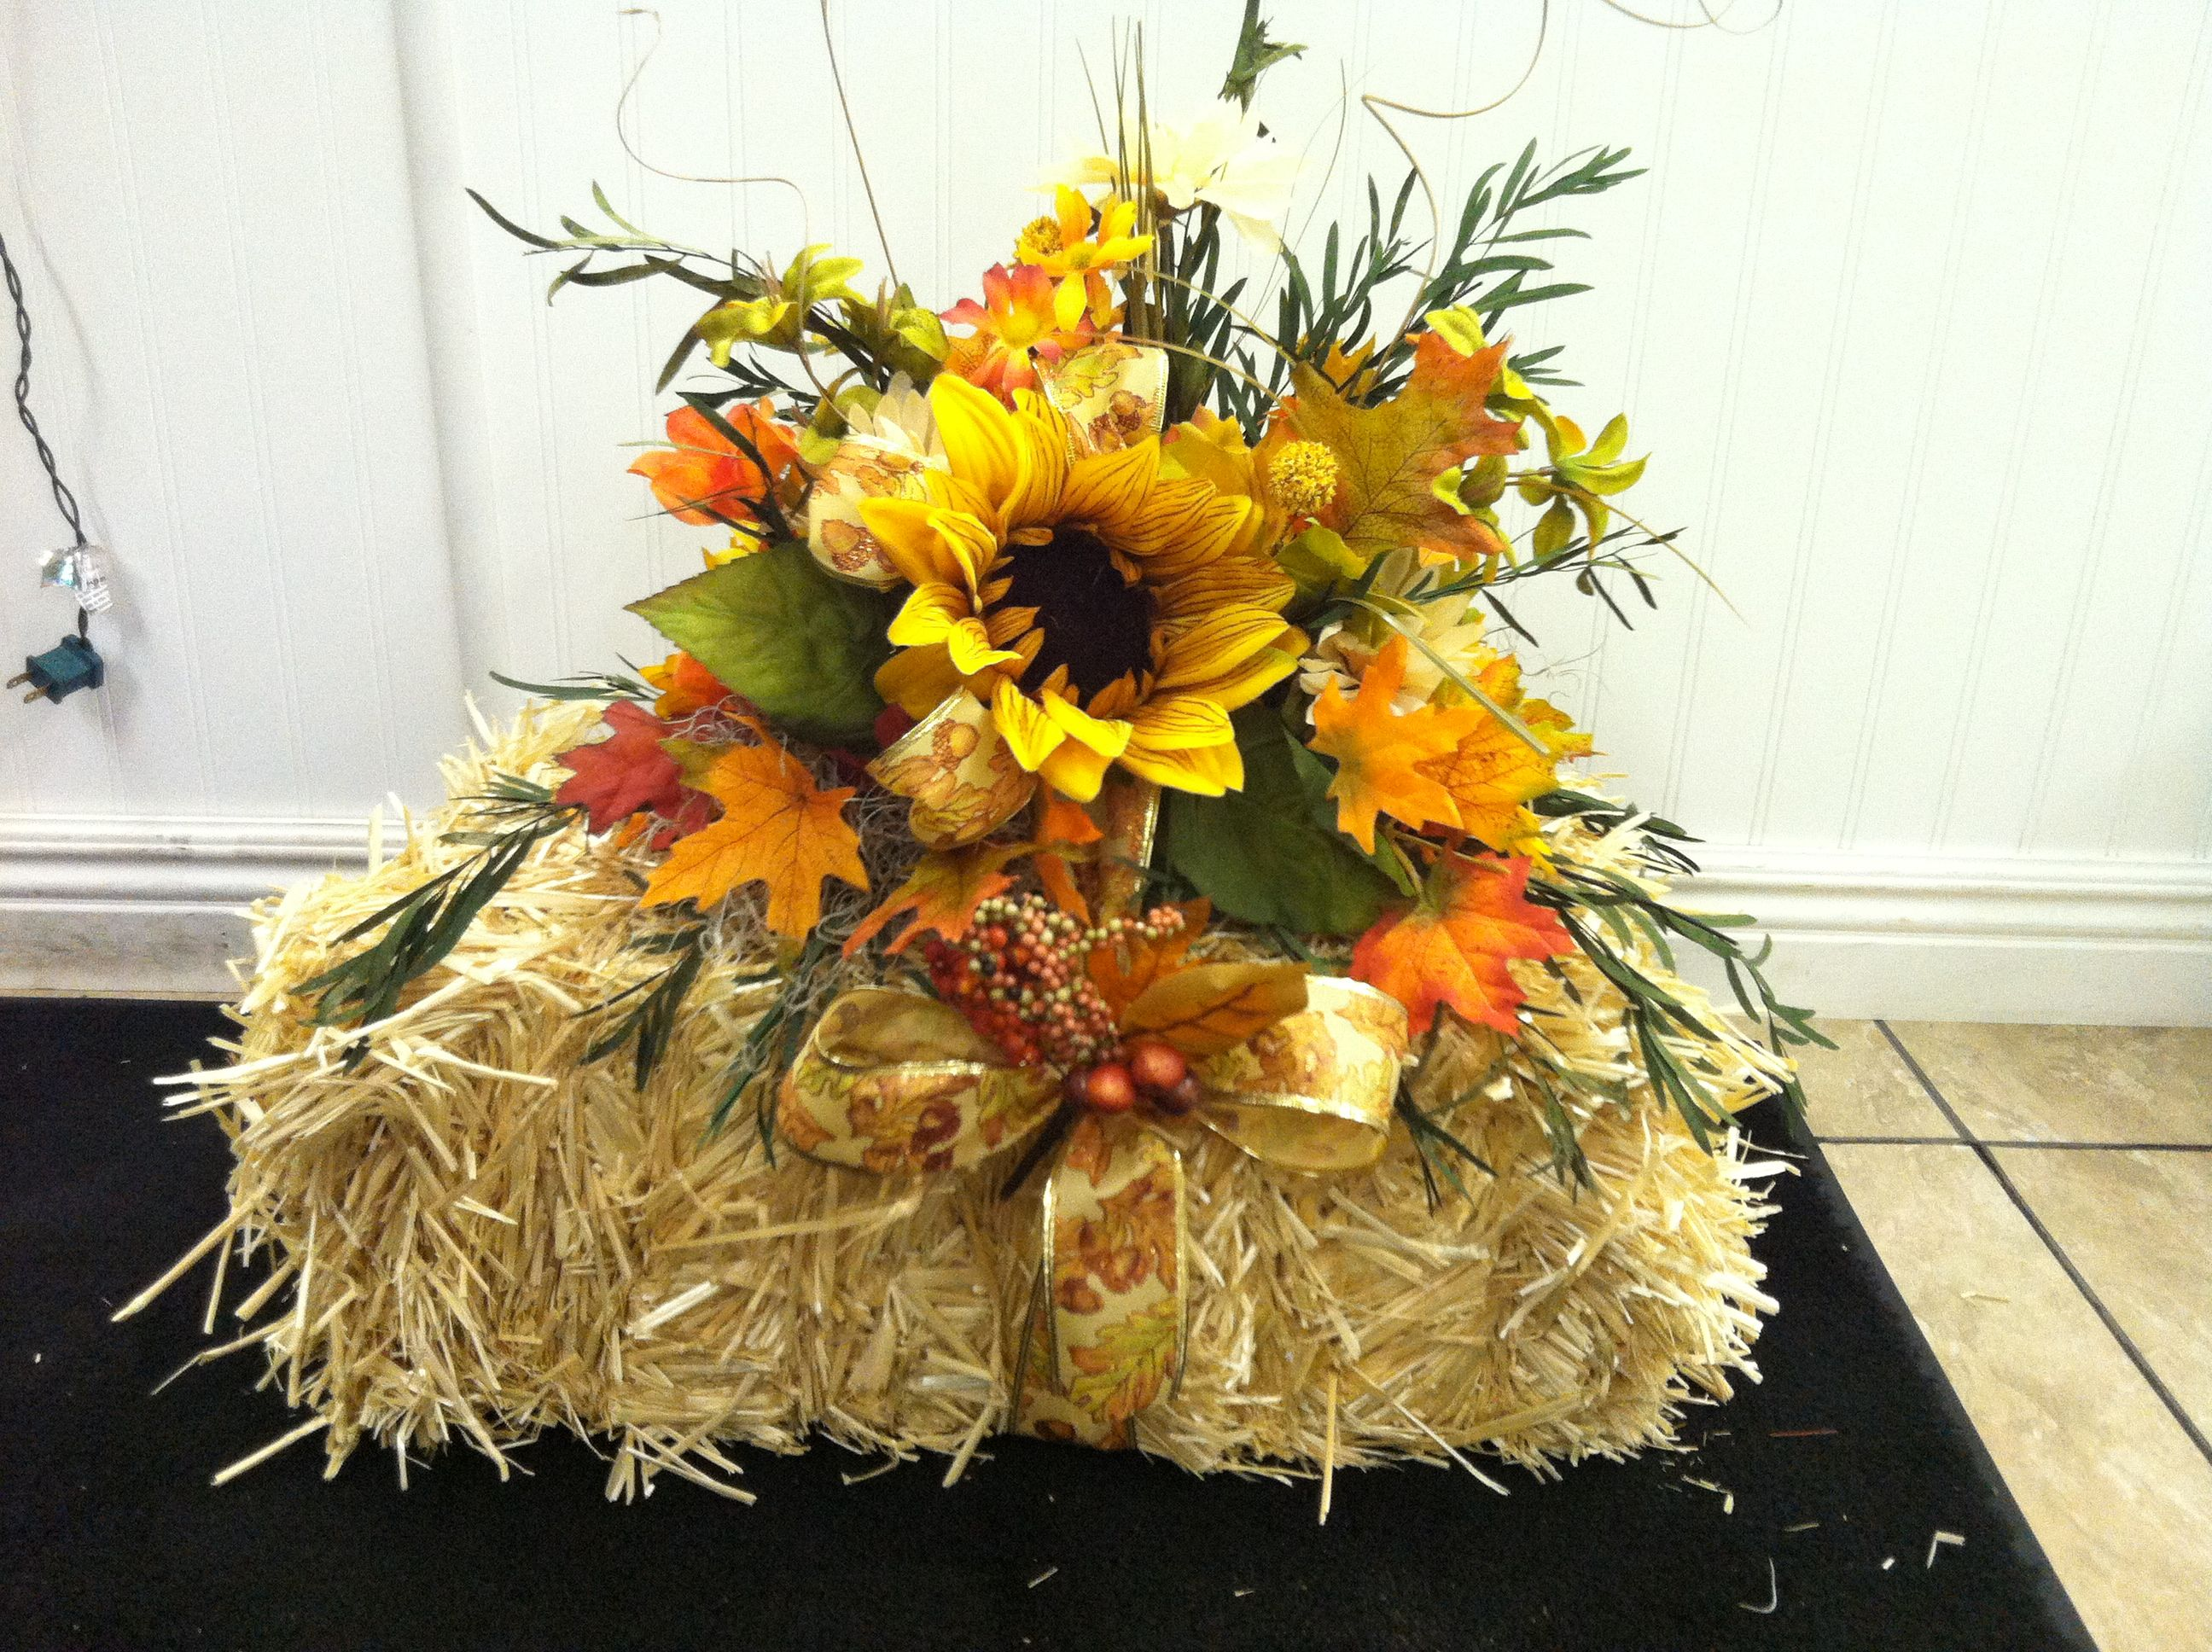 silk flowers nicely arranged on a small hay balethis would make great decorations for an outdoor fall country wedding